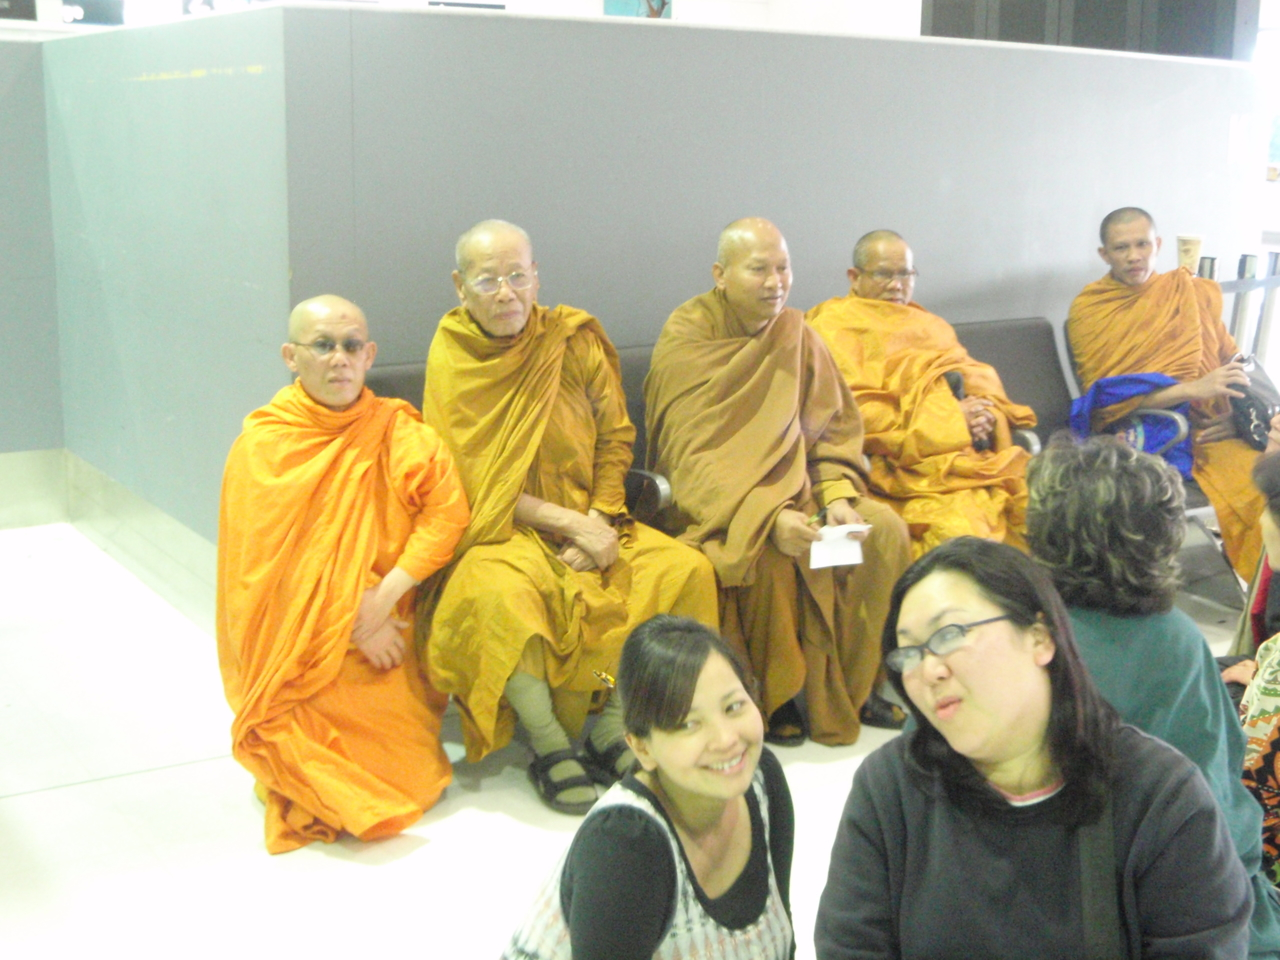 Buddhist monks at Airport Sydney 16